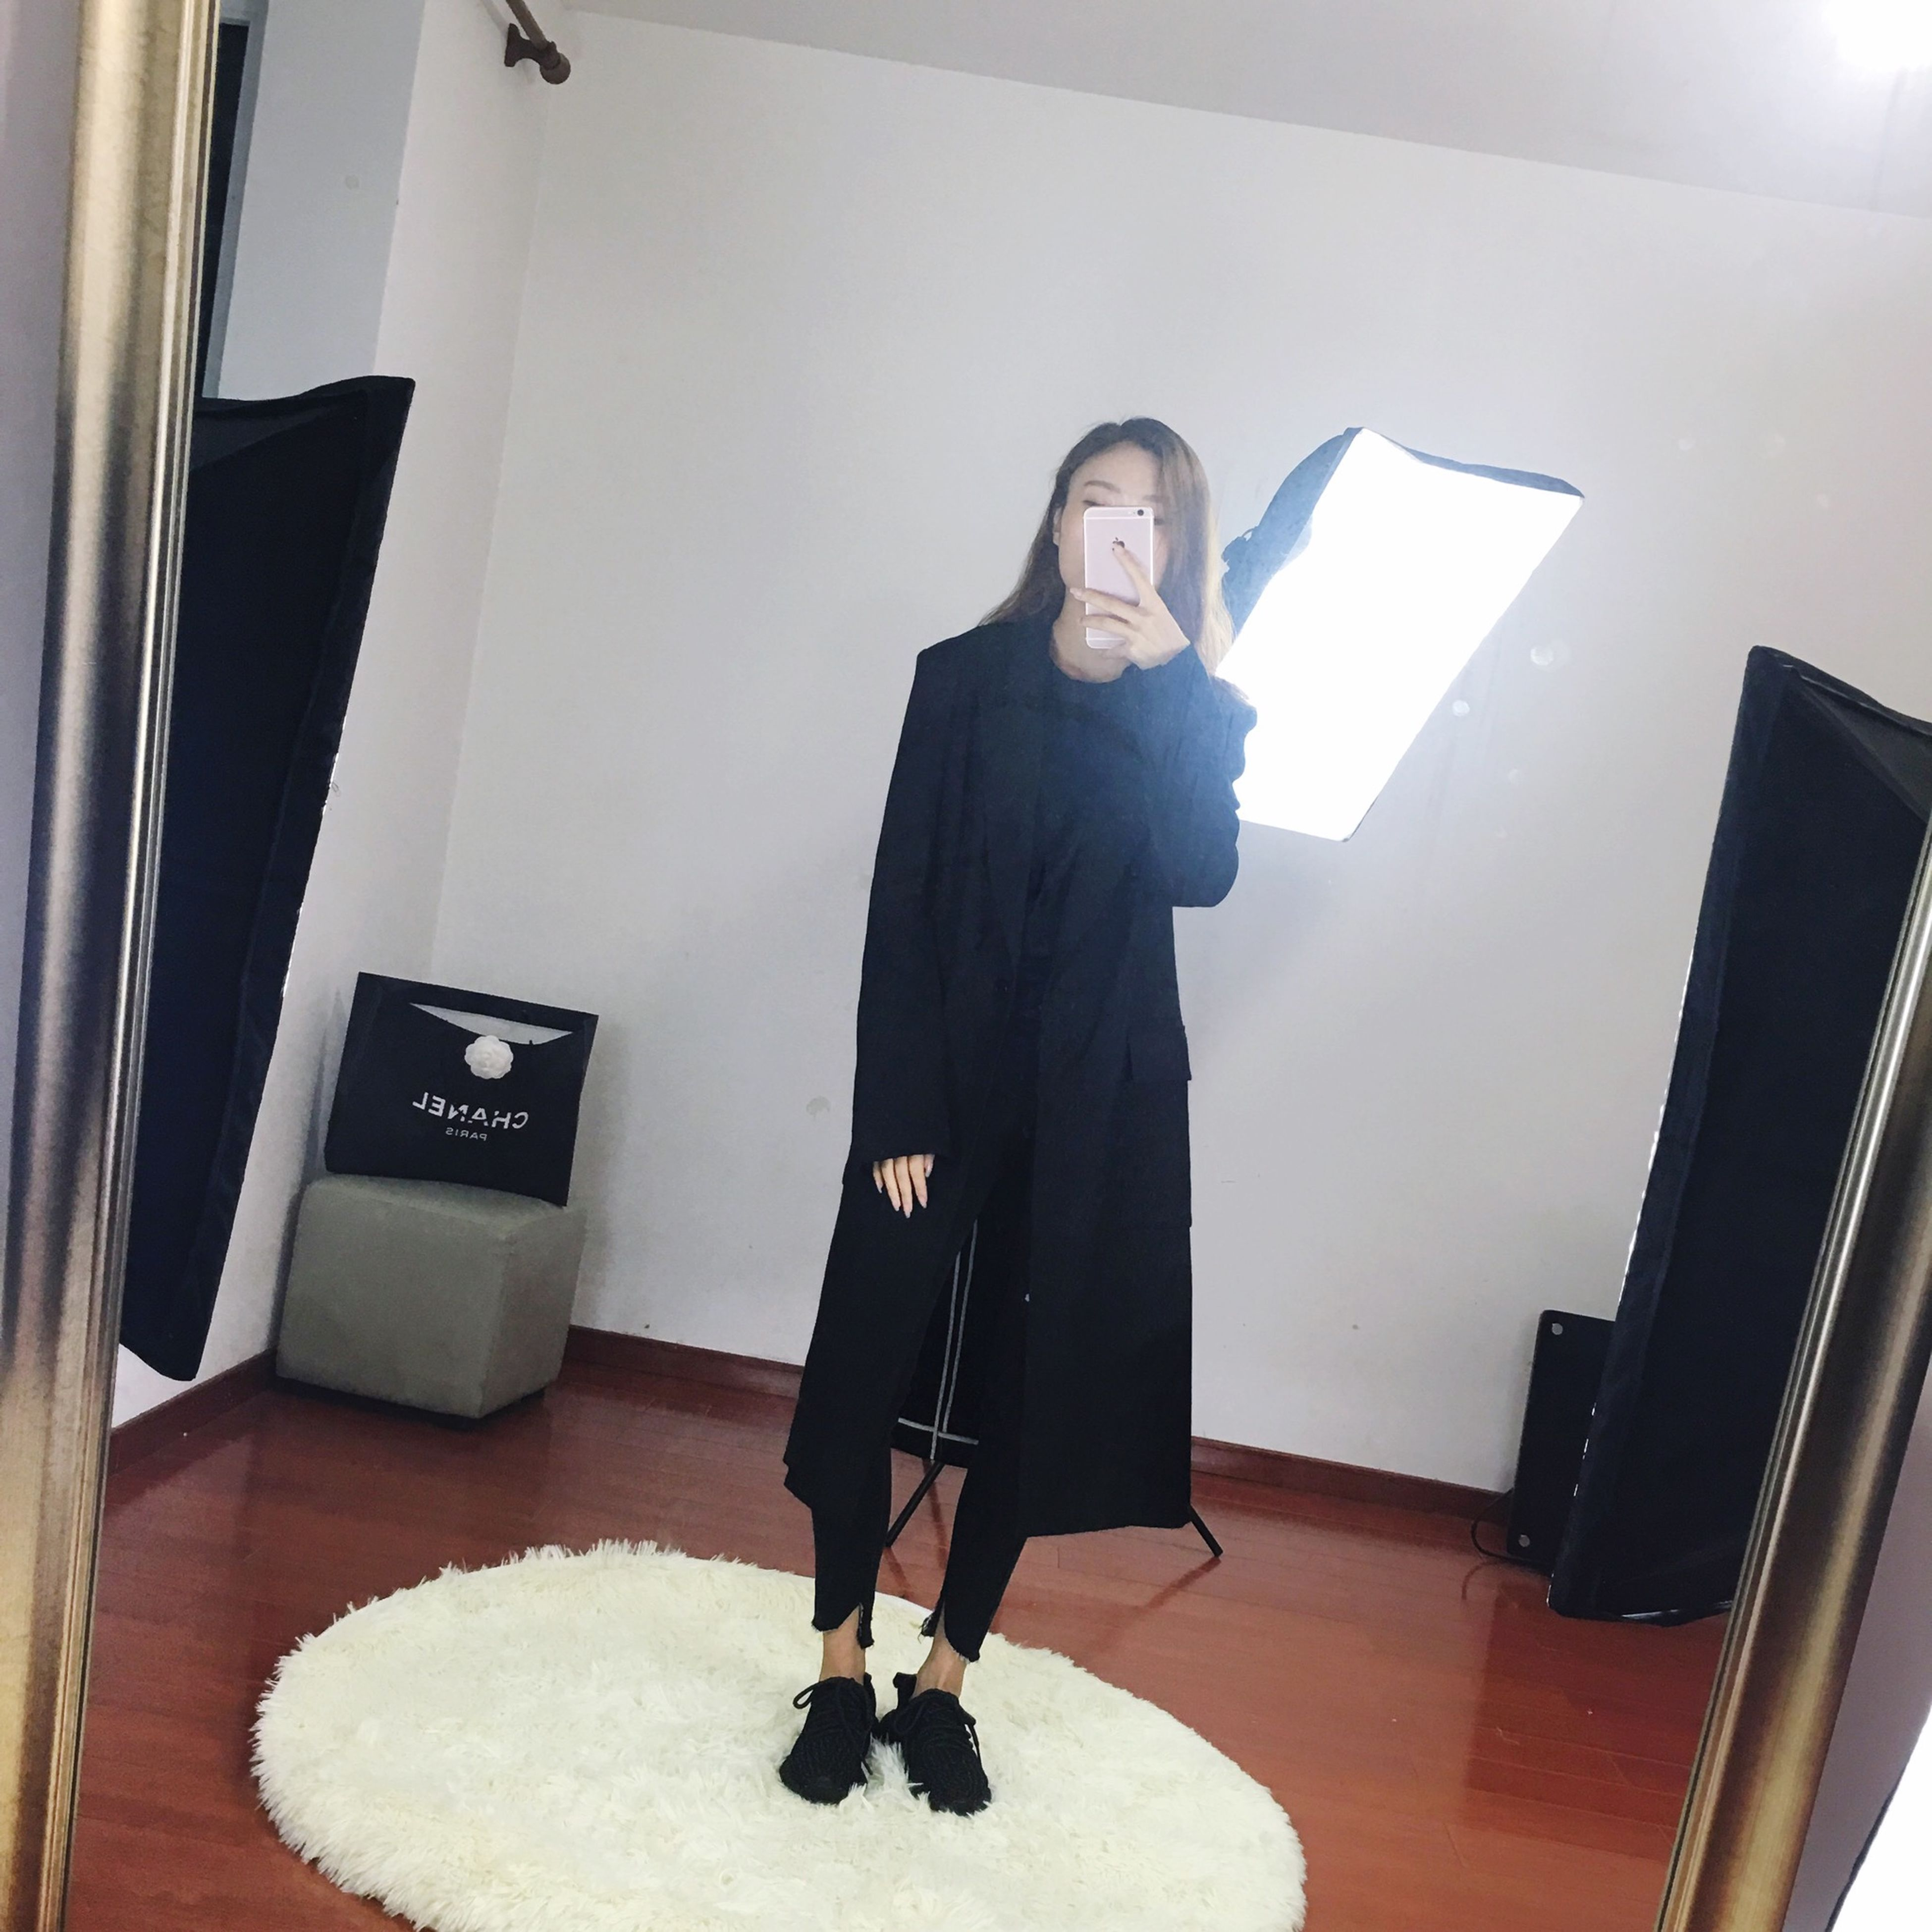 full length, lifestyles, standing, casual clothing, leisure activity, architecture, young adult, built structure, young women, building exterior, three quarter length, rear view, indoors, front view, holding, person, house, warm clothing